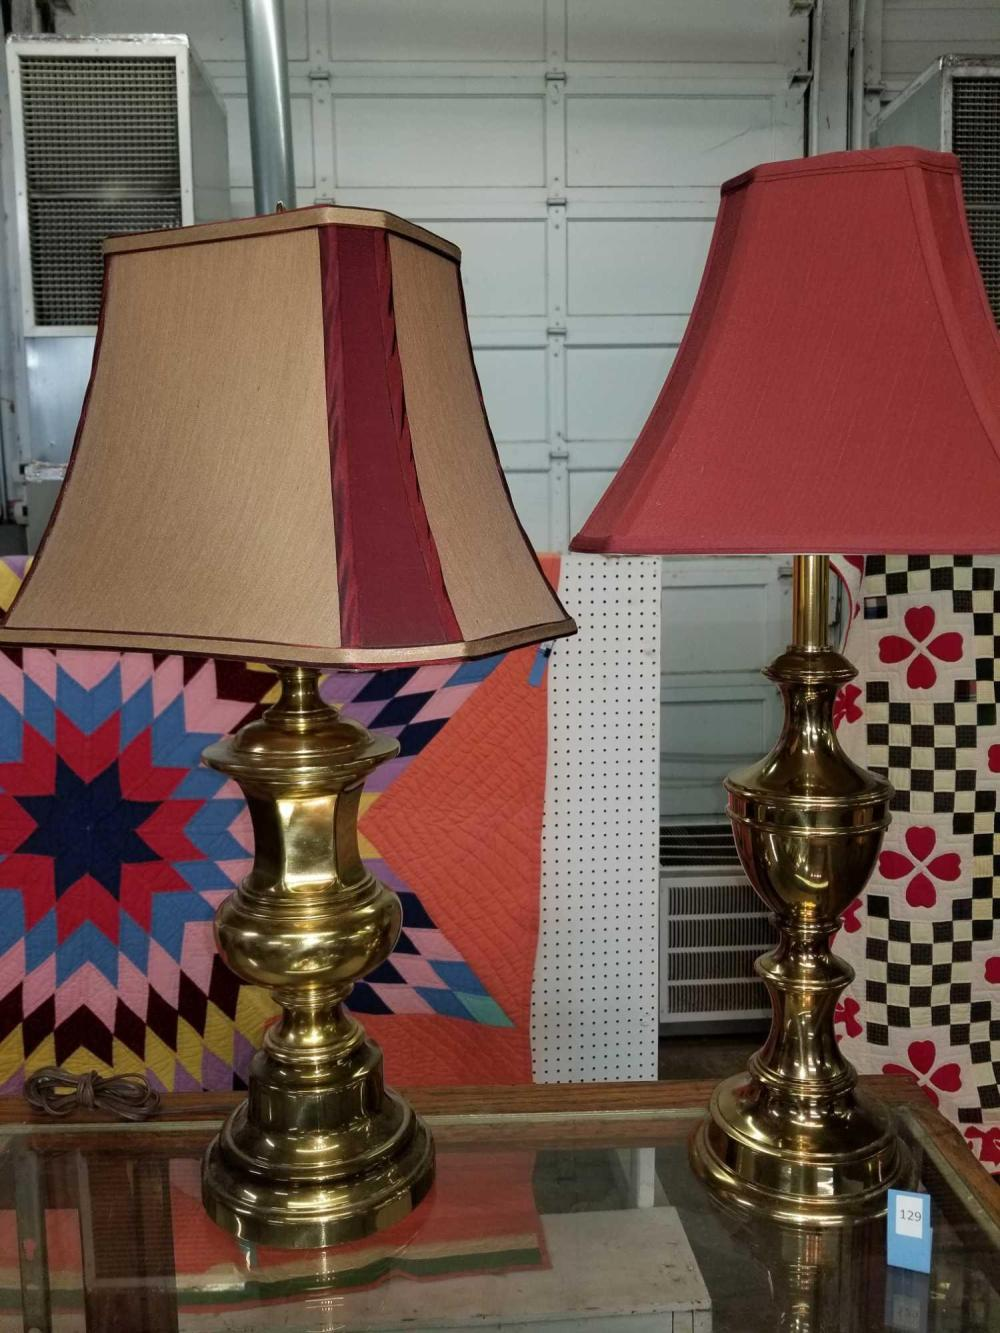 DECORATOR BRASS TABLE LAMPS W/ SHADES - 2 ITEMS